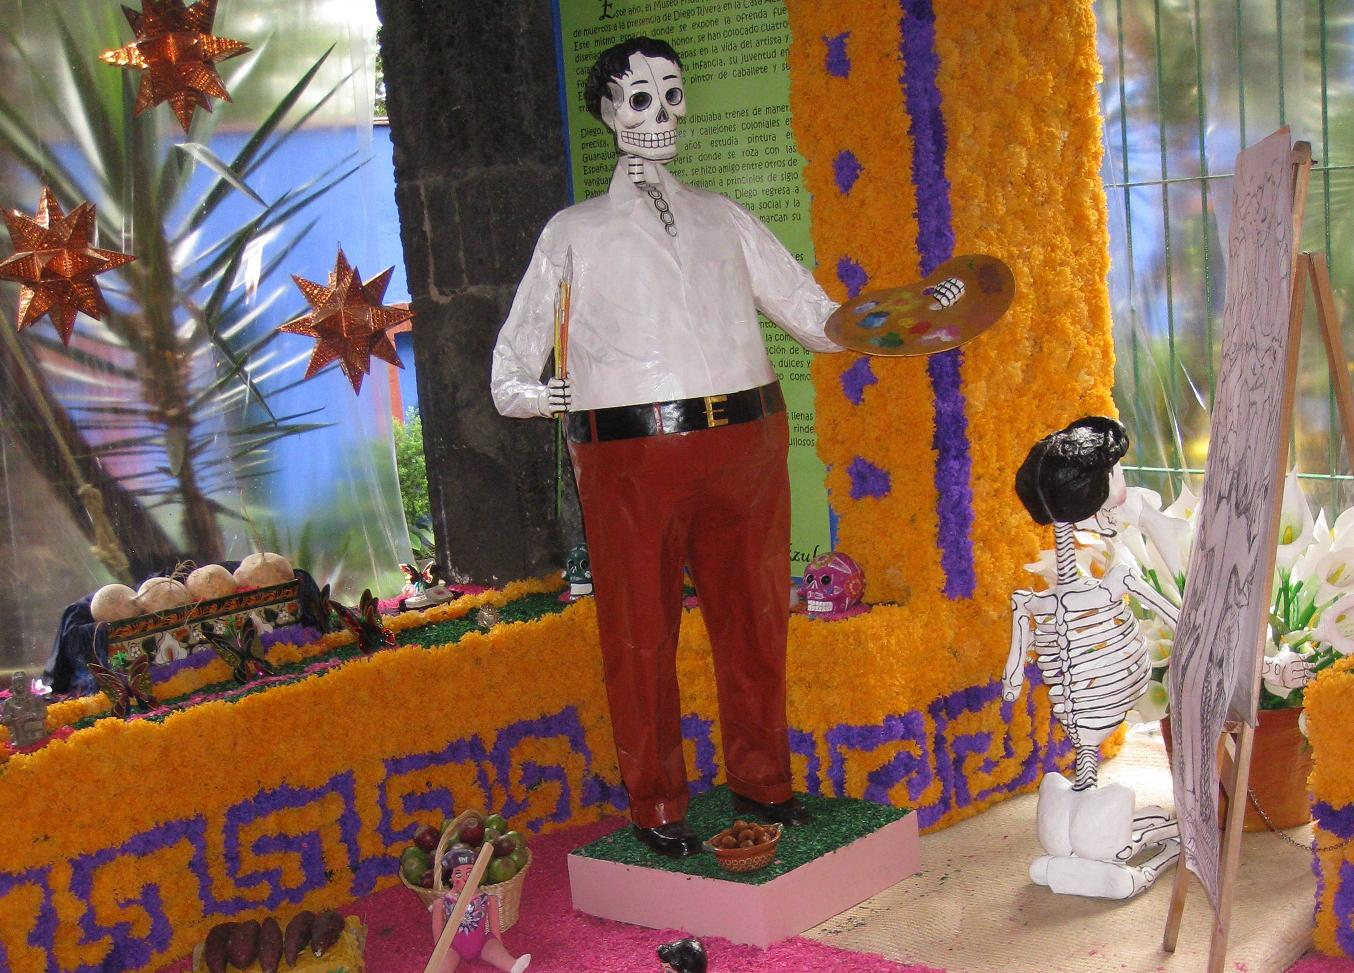 Here's Diego del Muerto at the ofrenda in the garden of the Kahlo museum